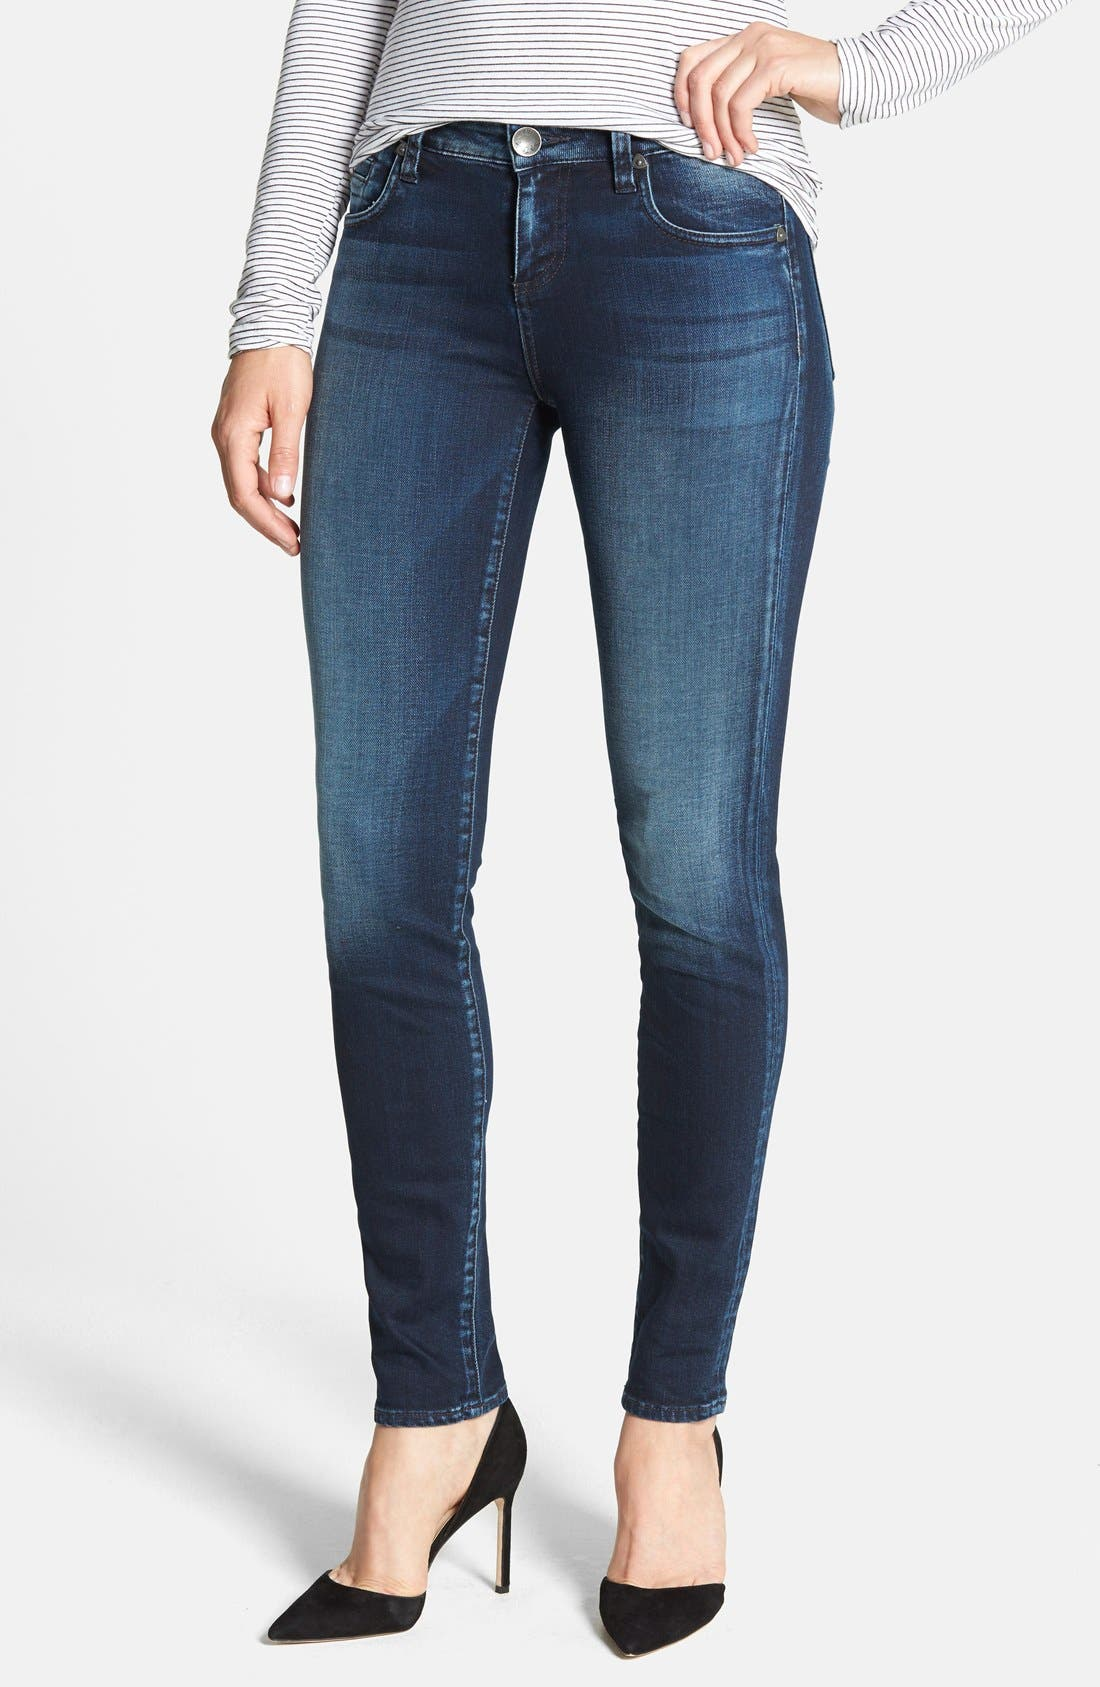 Main Image - KUT from the Kloth 'Diana' Skinny Jeans (Breezy)